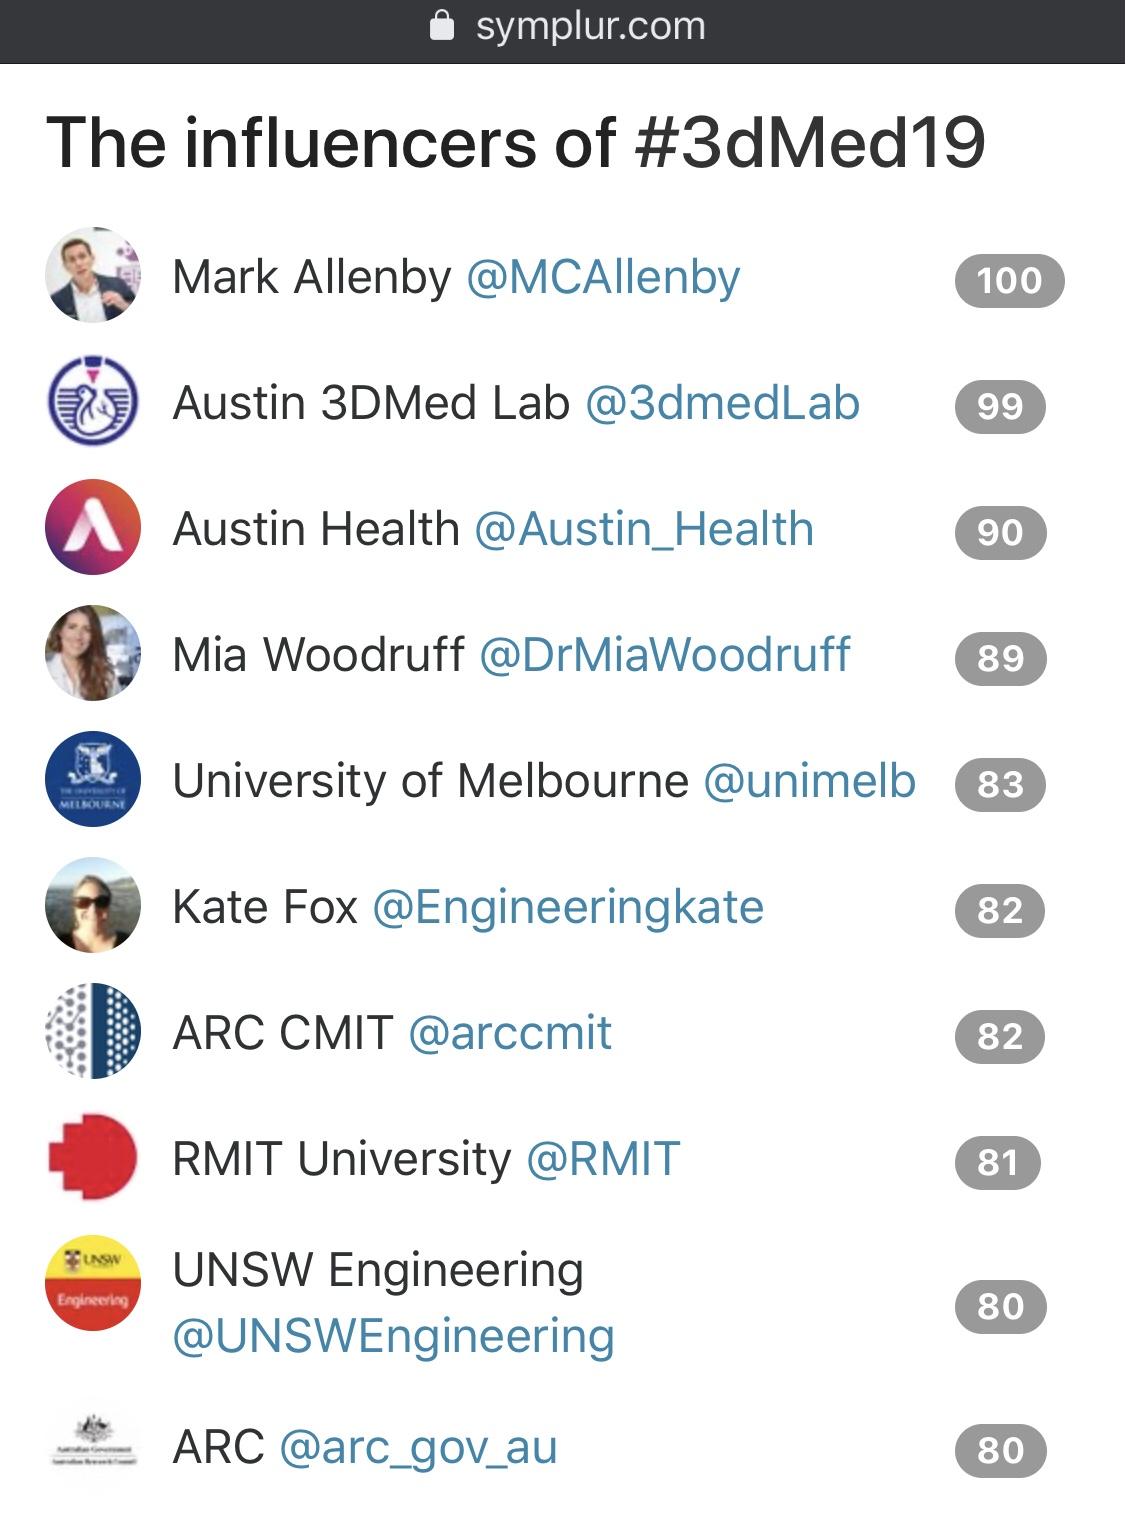 Twitter Leaderboard for #3dMed19 - courtesy Symplur